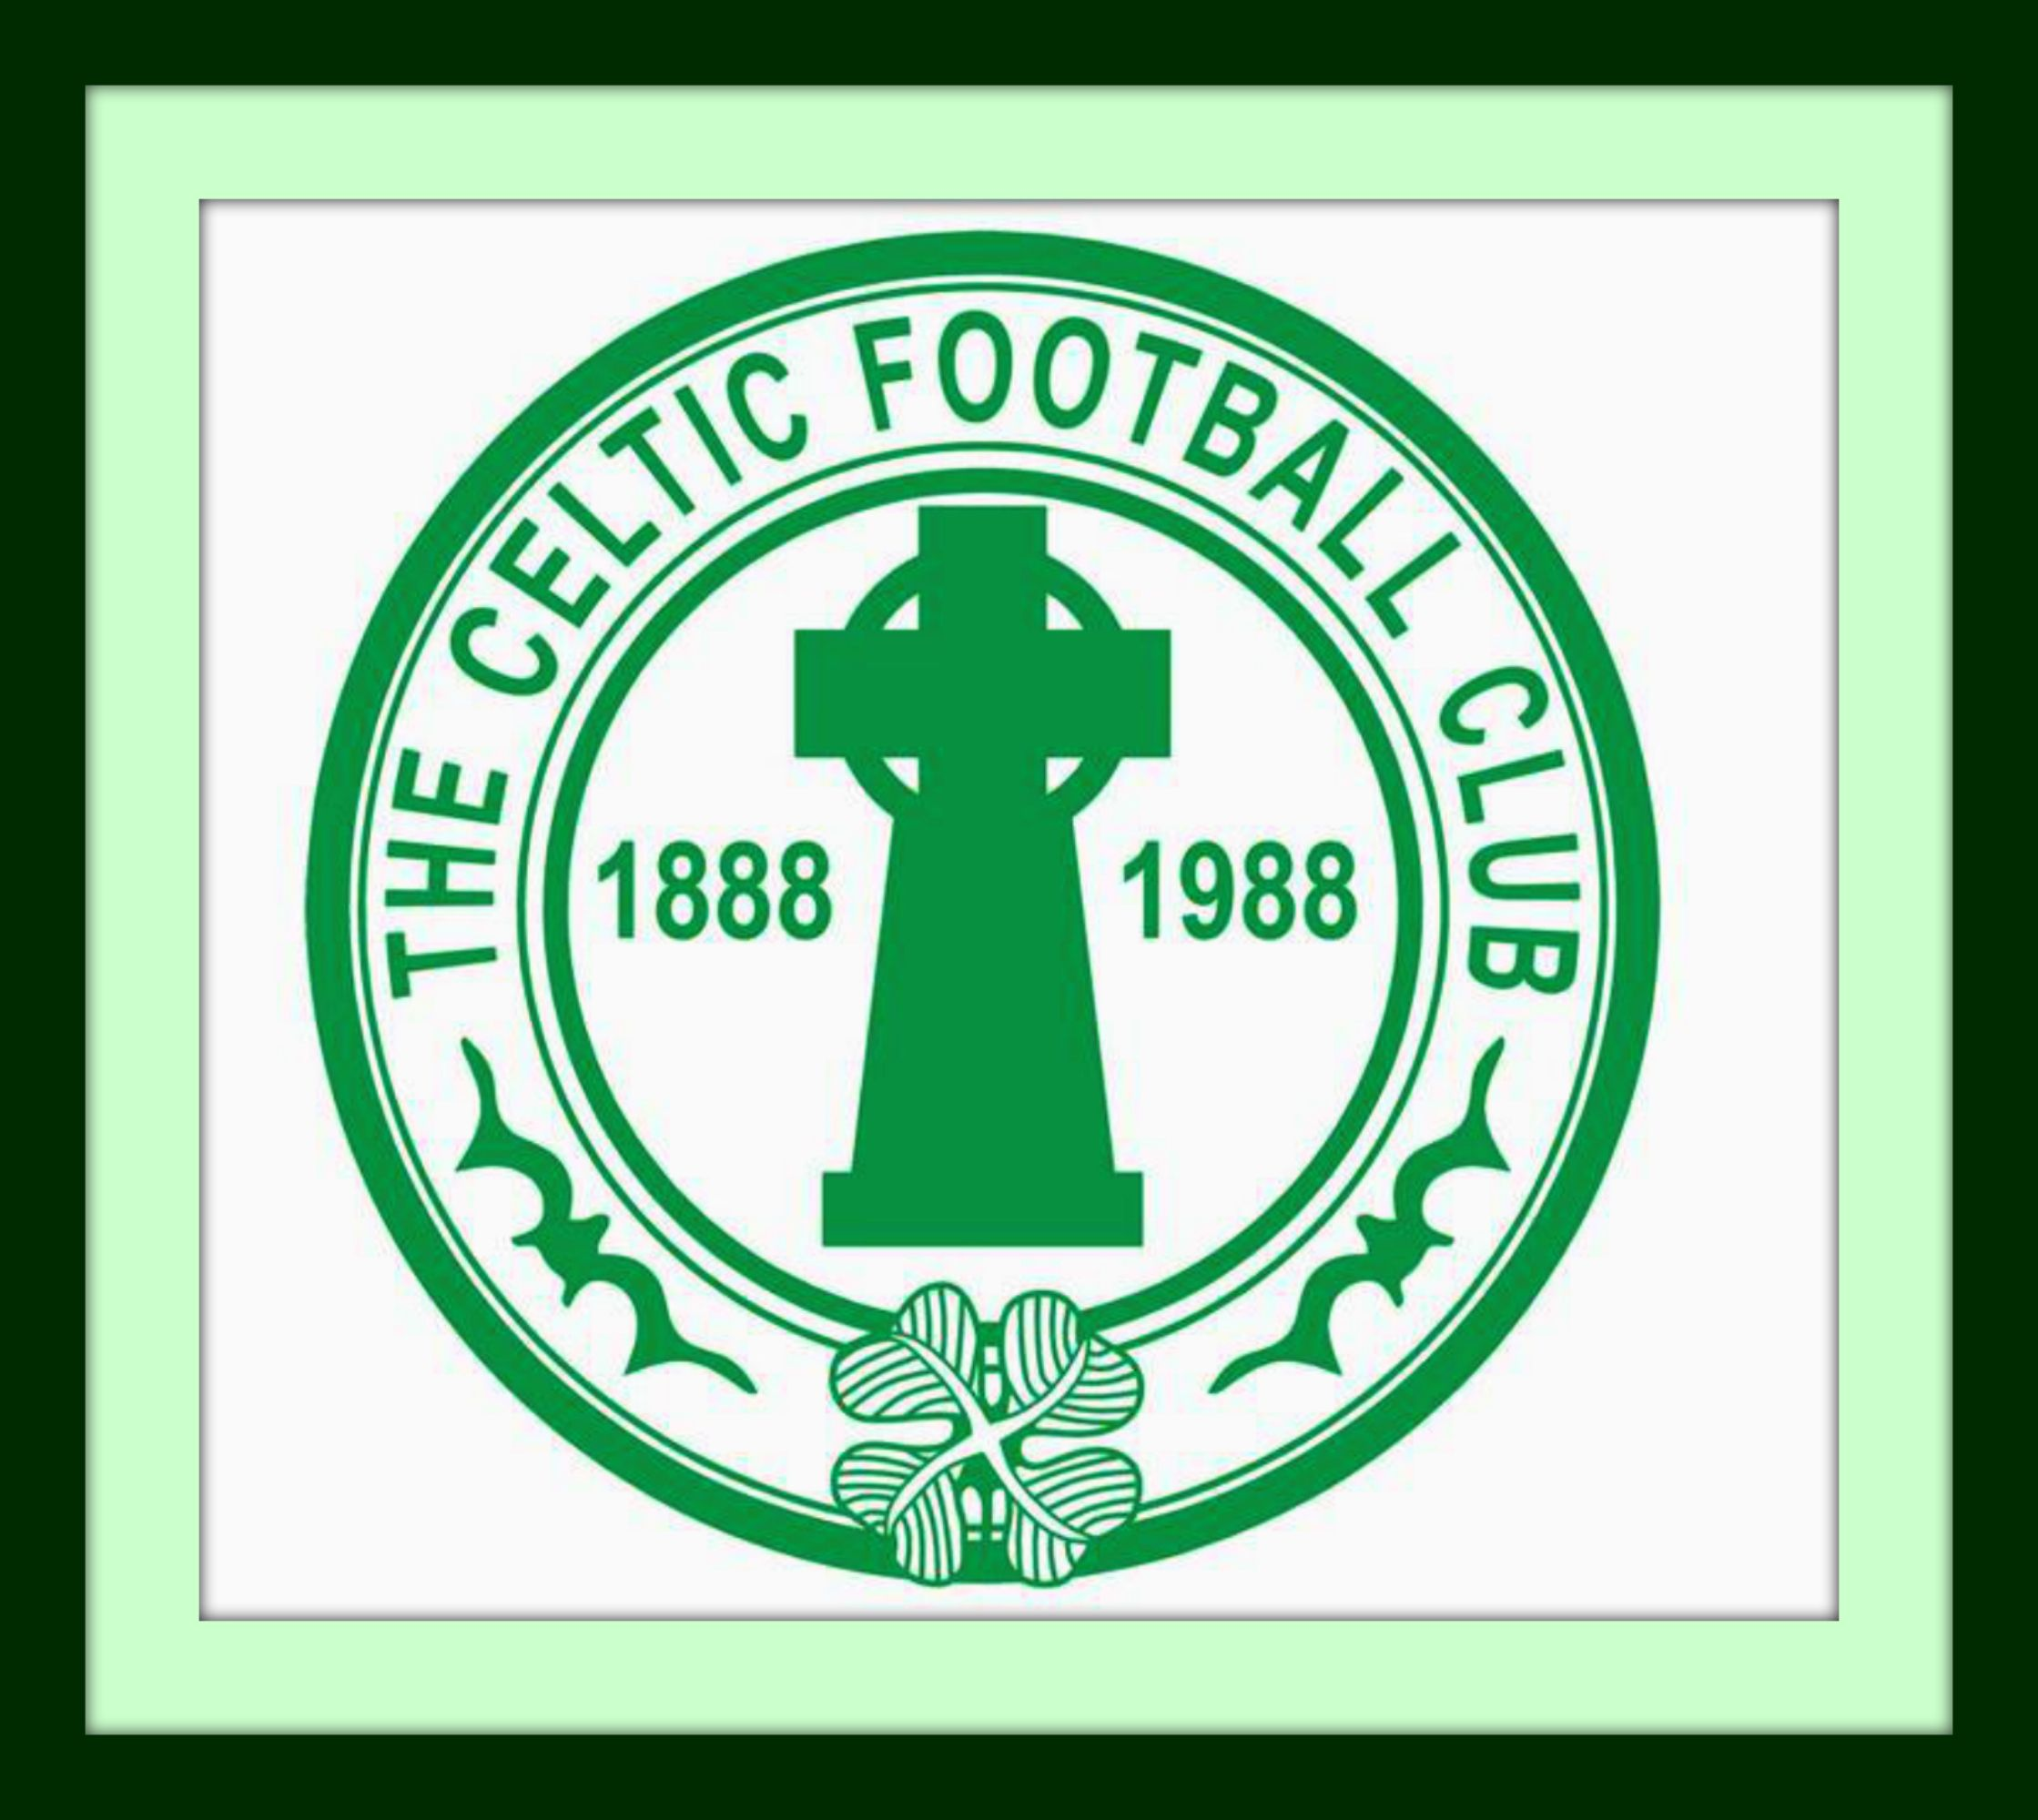 Pin on Glasgow celtic football club